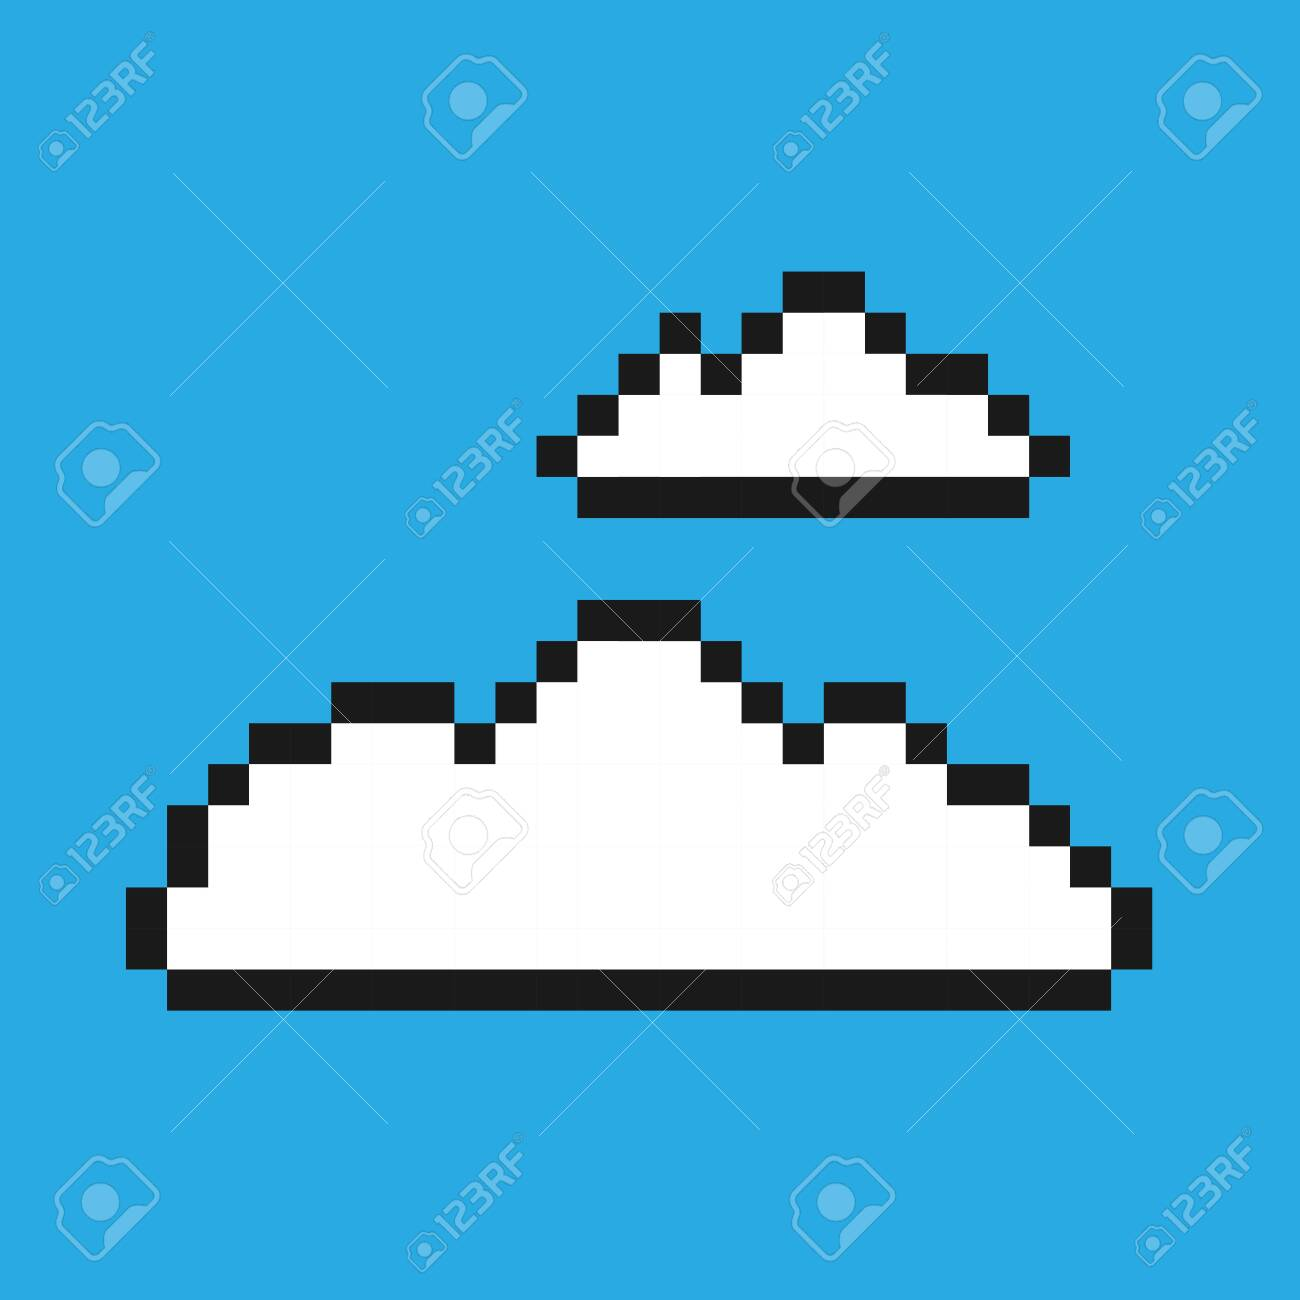 Pixel video game cloud icon. 8-bit concept. Vector illustration in retro game style isolated on blue background. - 147070631